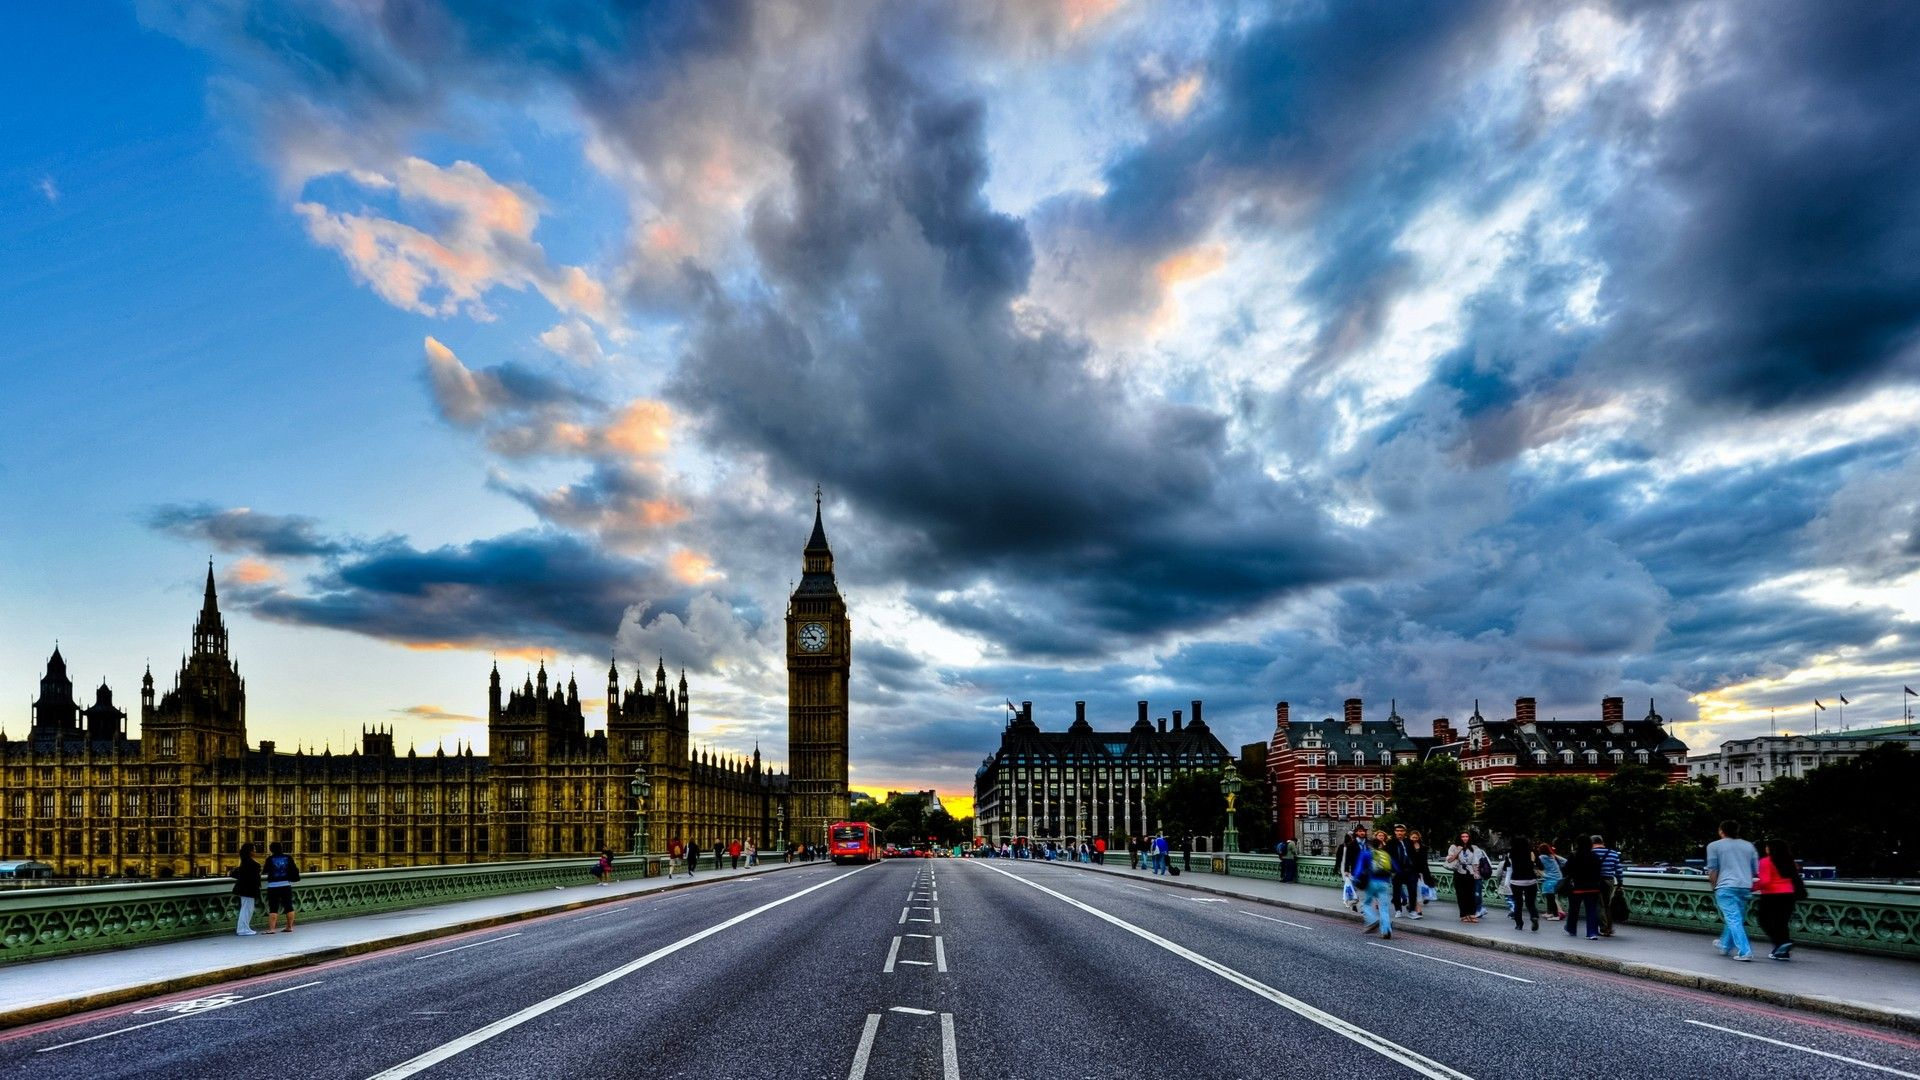 Free HD Wallpapers For Laptop | Pretty Pictures in 2019 | Bridge wallpaper, Big ben london ...